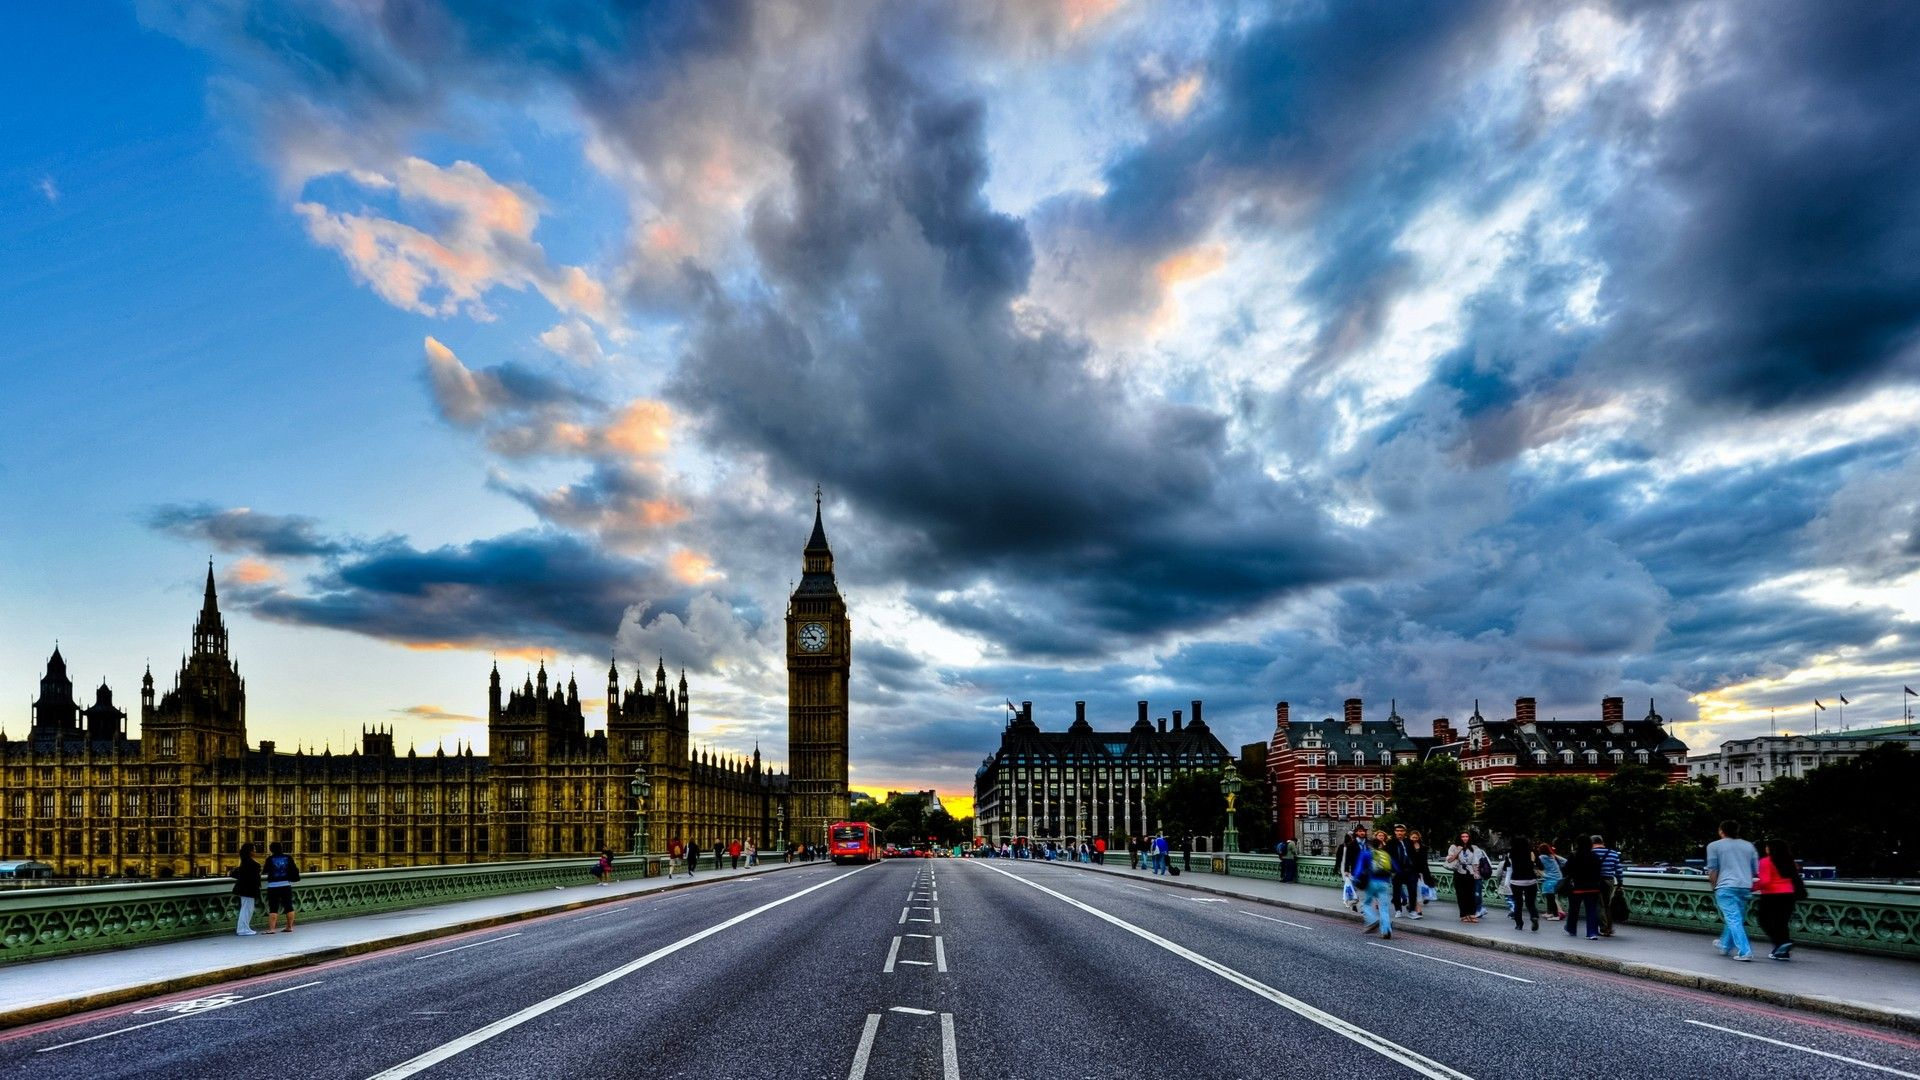 Free HD Wallpapers For Laptop | Pretty Pictures in 2019 | Bridge wallpaper, Big ben london ...